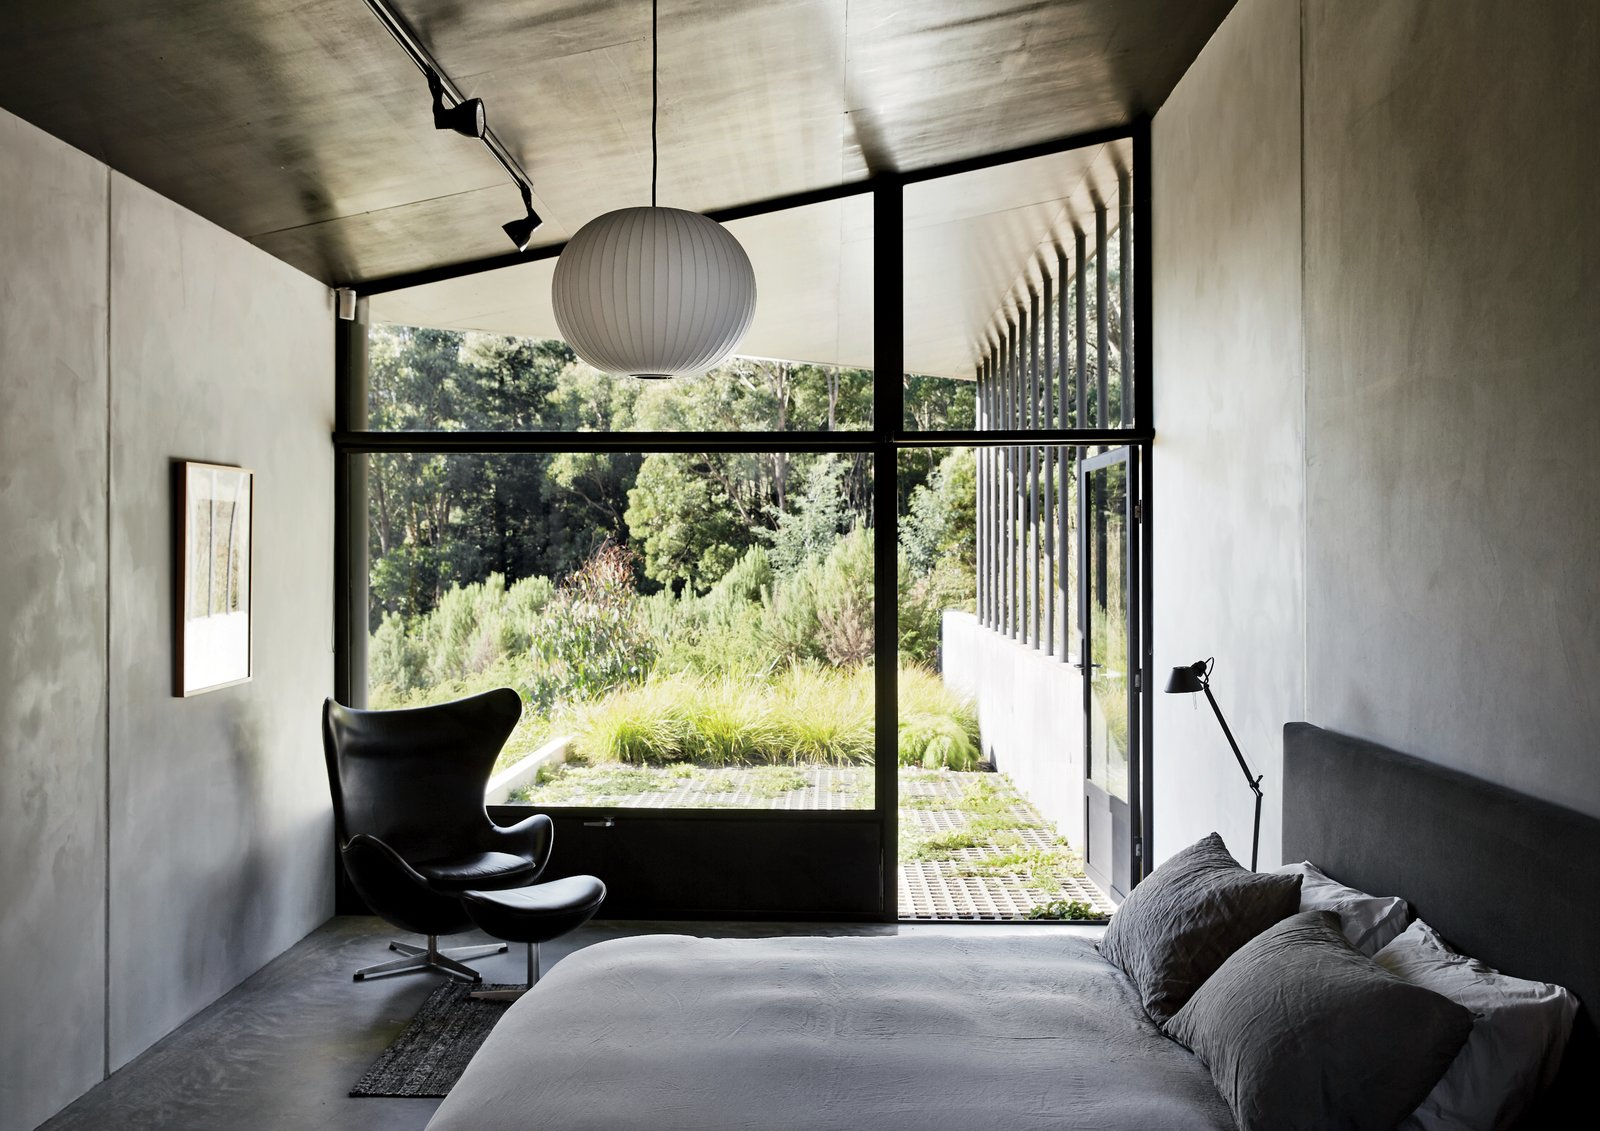 Bedroom, Lamps, Bed, Chair, Table Lighting, Ceiling Lighting, and Pendant Lighting The master bedroom, which features a bed by Paolo Piva, an Egg chair by Arne Jacobsen, and a Ball pendant lamp by George Nelson, opens directly onto a verdant patio. The metal shutters at the bottom of the window keep out flying embers in case of fire.  Photo 6 of 10 in Richly Furnished Home Frames Striking Landscape Views